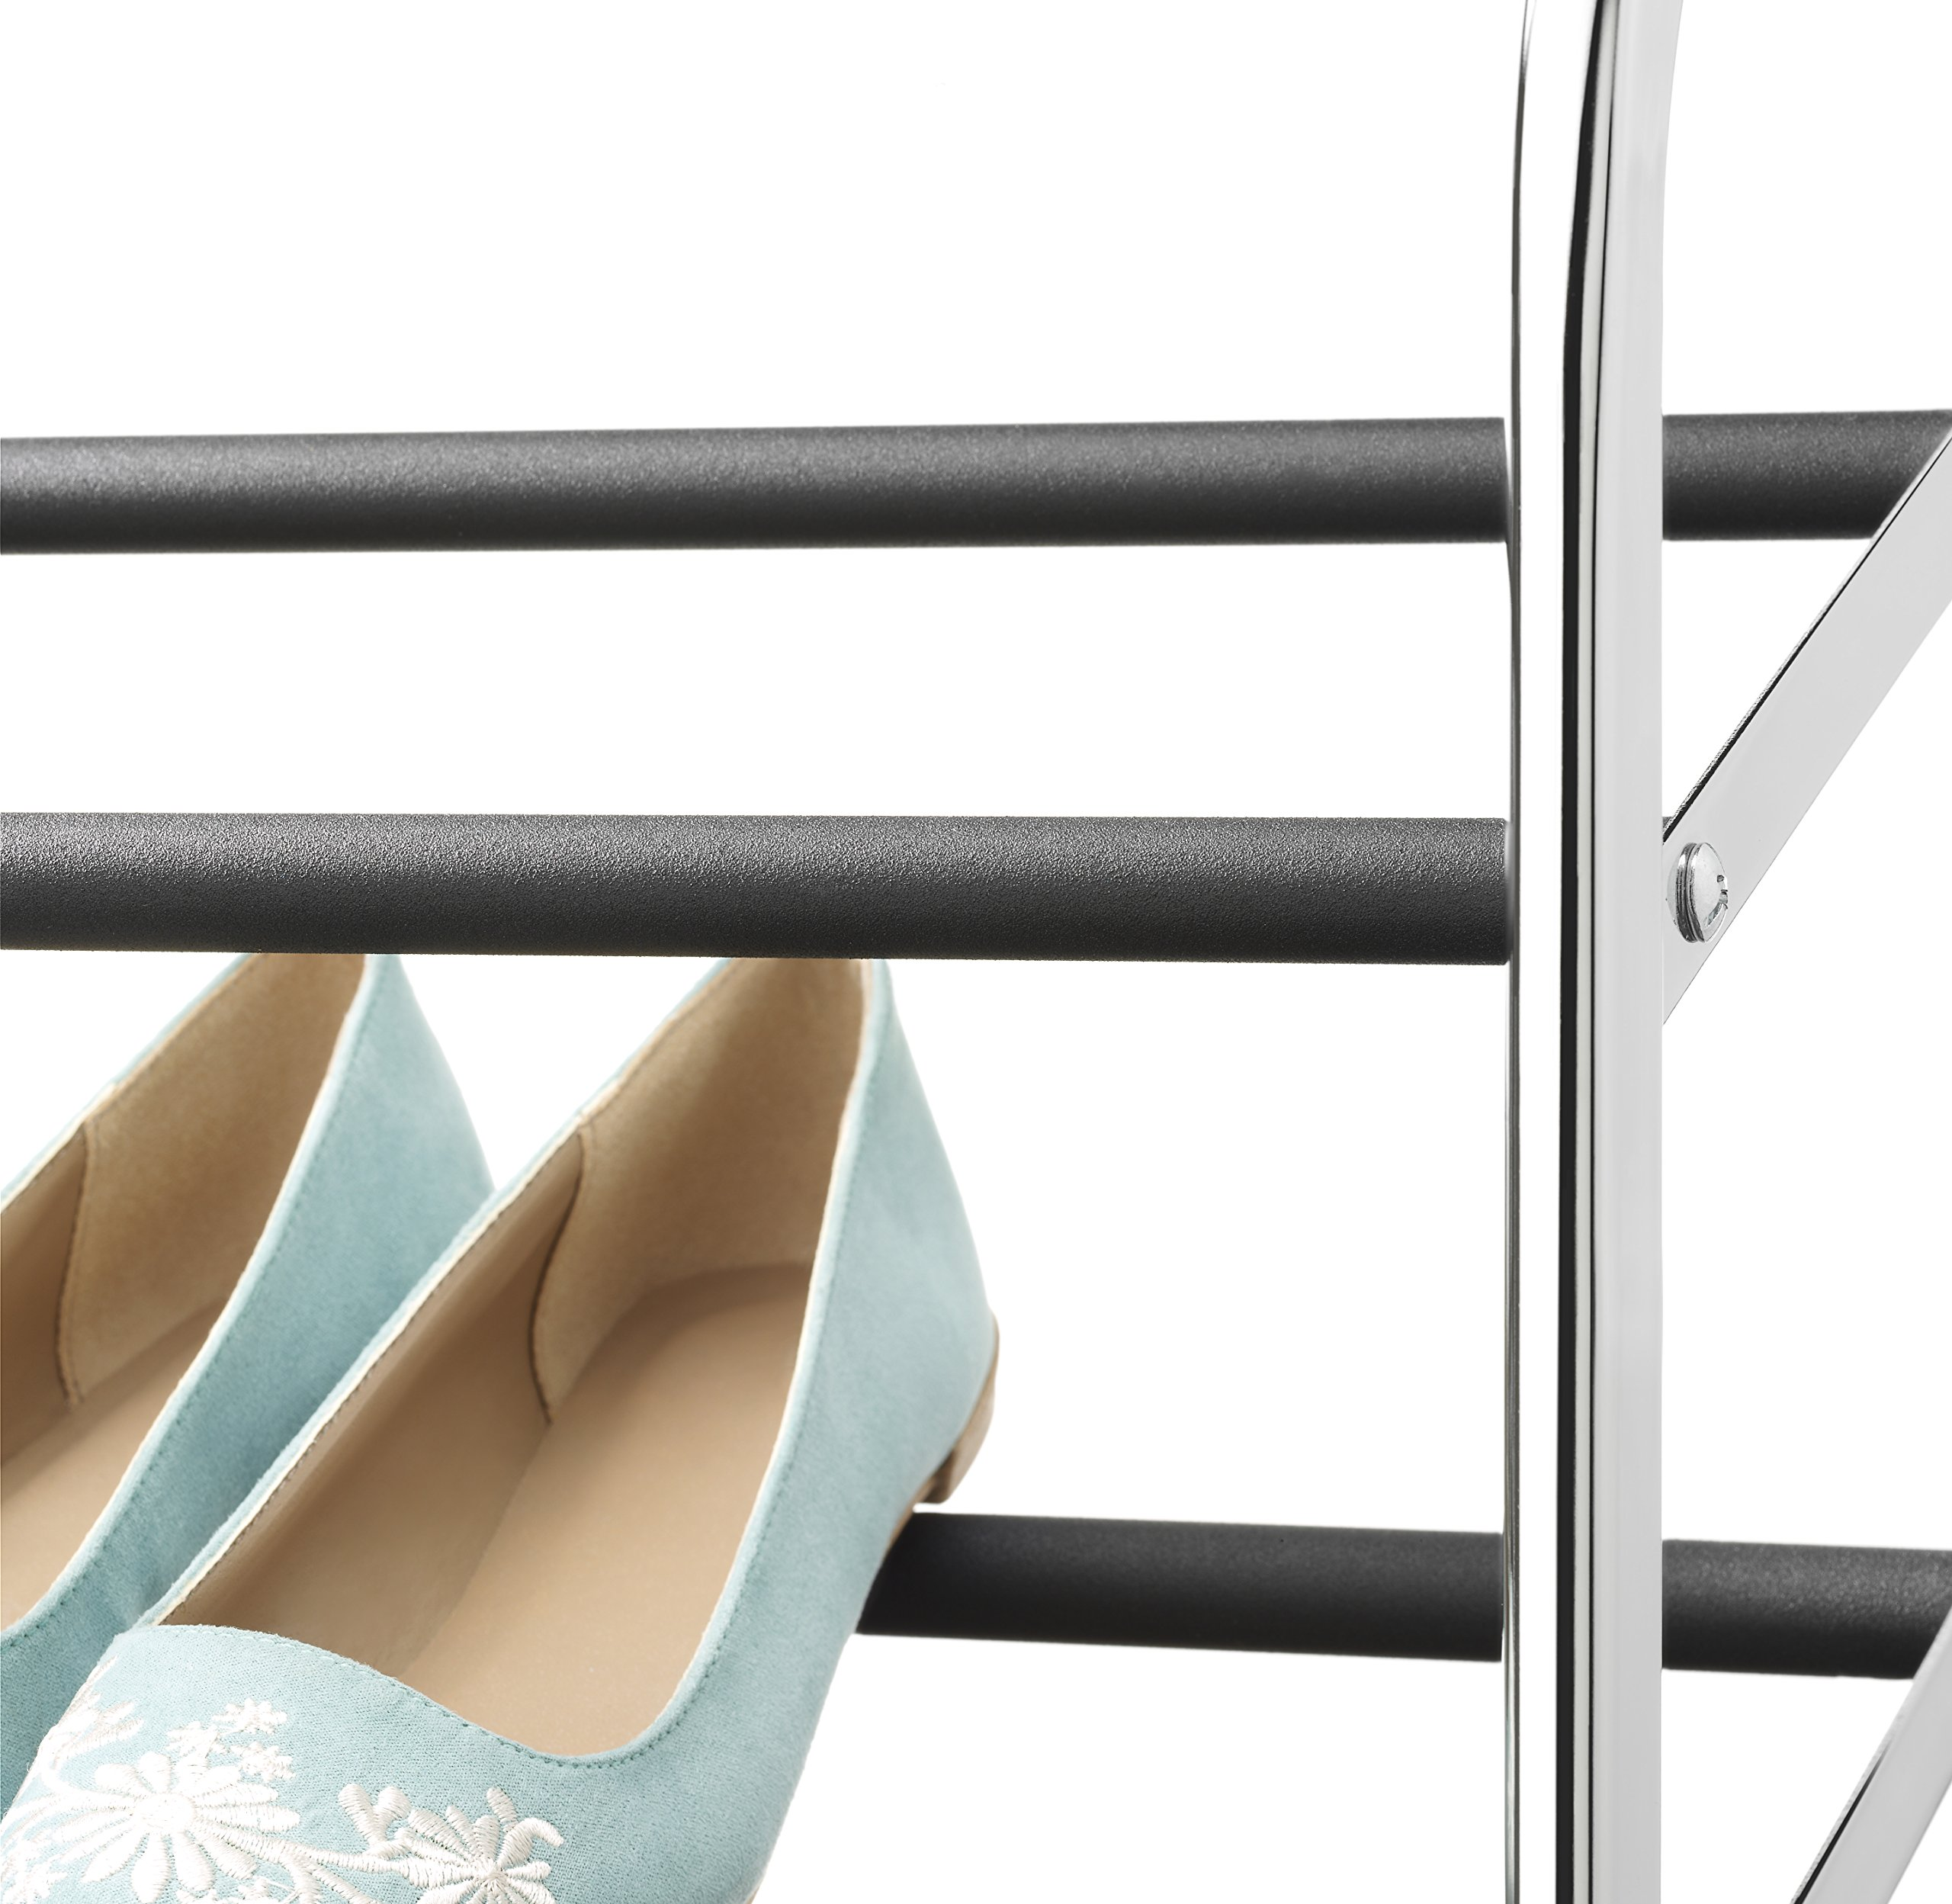 Whitmor 10 Tier Shoe Tower - 50 Pair - Rolling Shoe Rack with Locking Wheels - Chrome by Whitmor (Image #4)